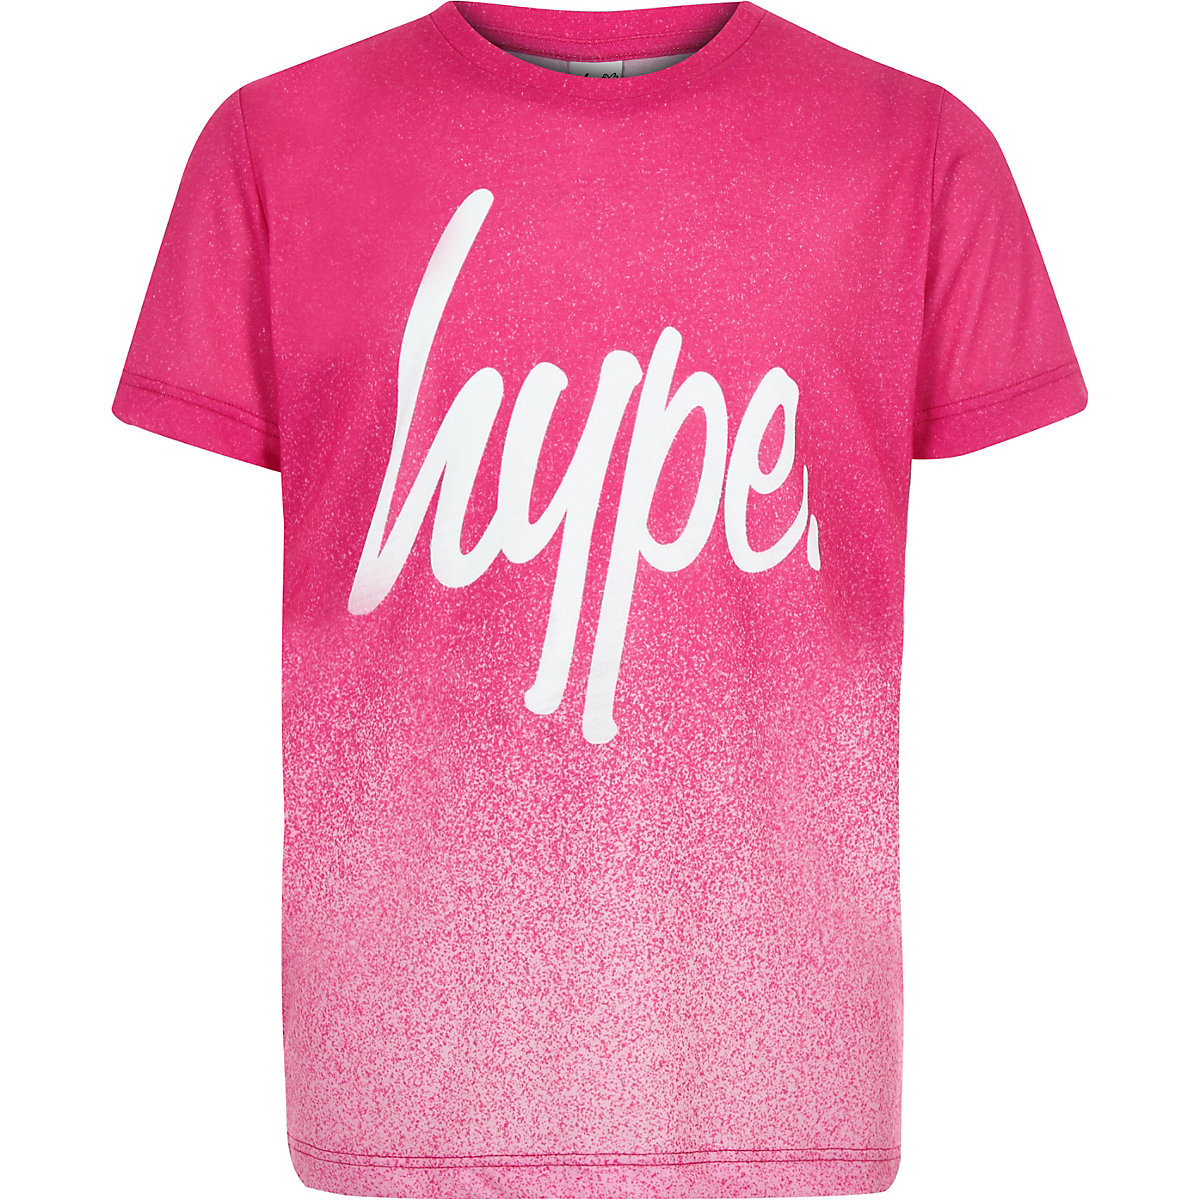 Girls Hype pink speckled T-shirt